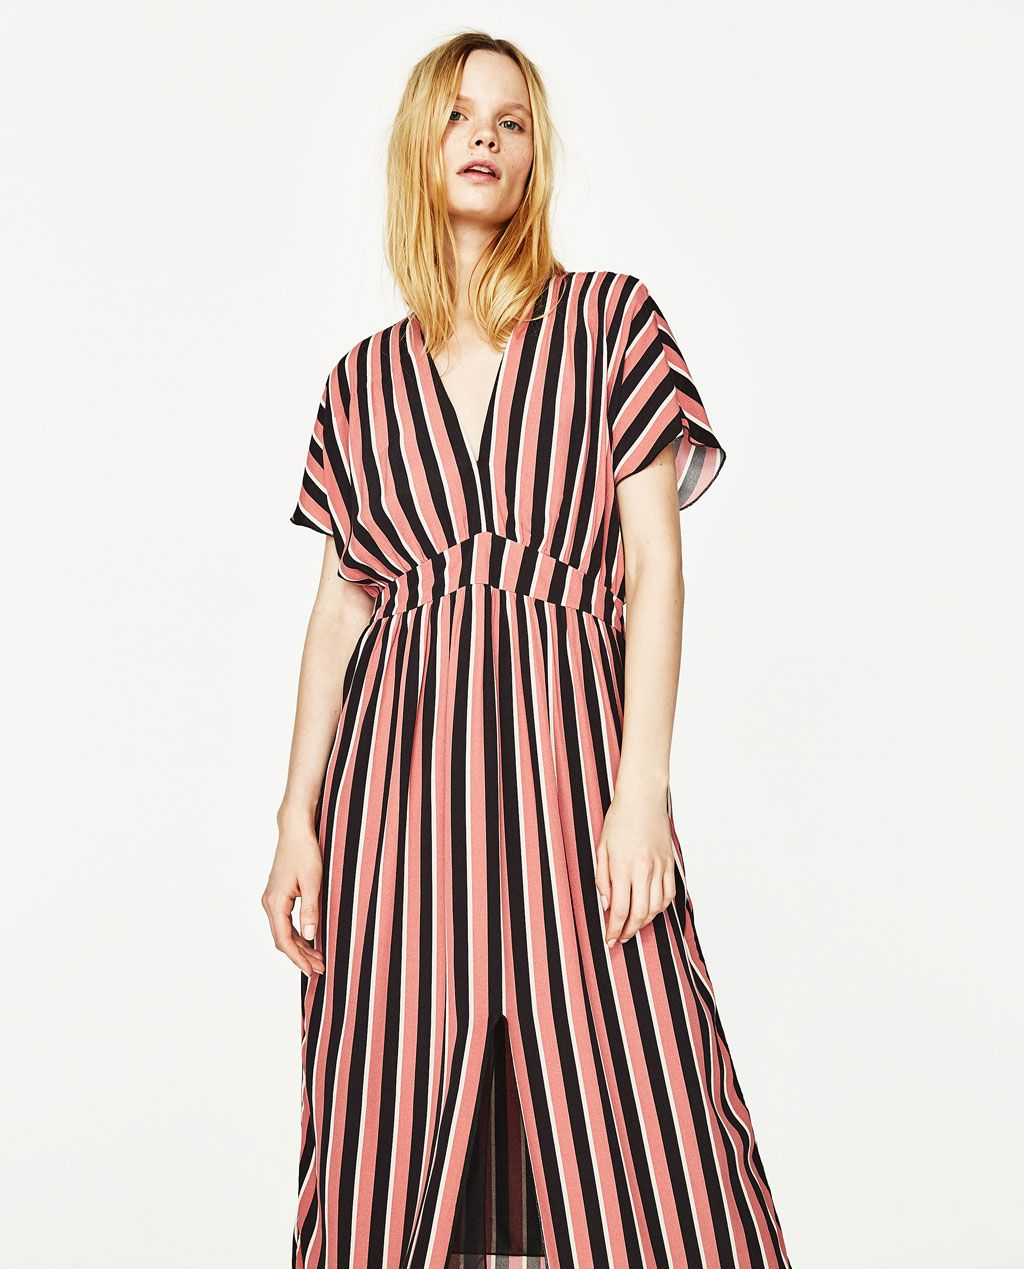 dresses women new collection zara united states